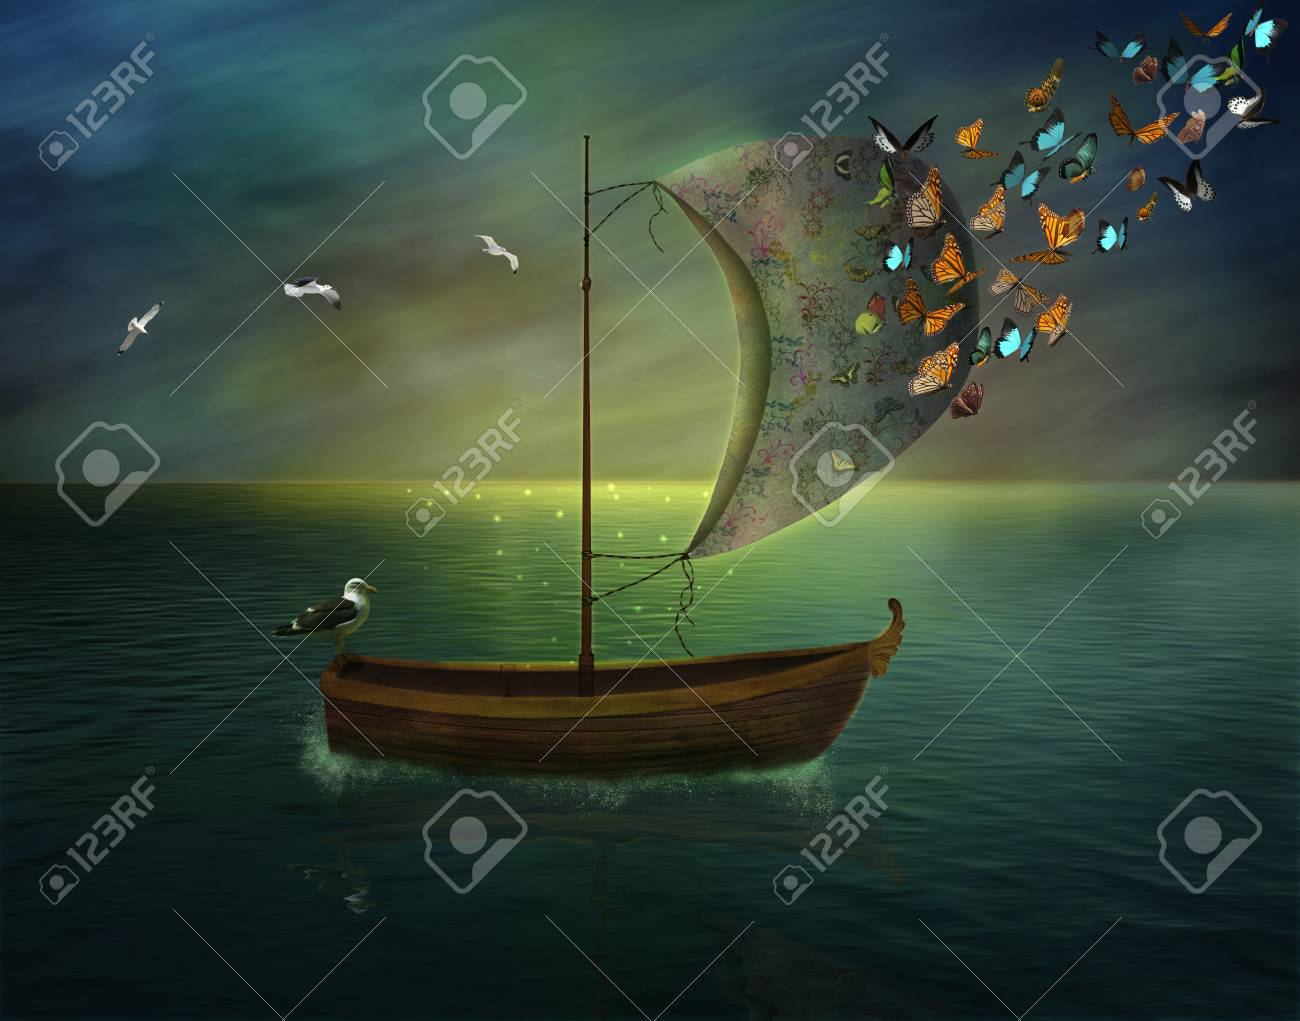 lonely boat sailing in a calm sea and butterflies - 28919272